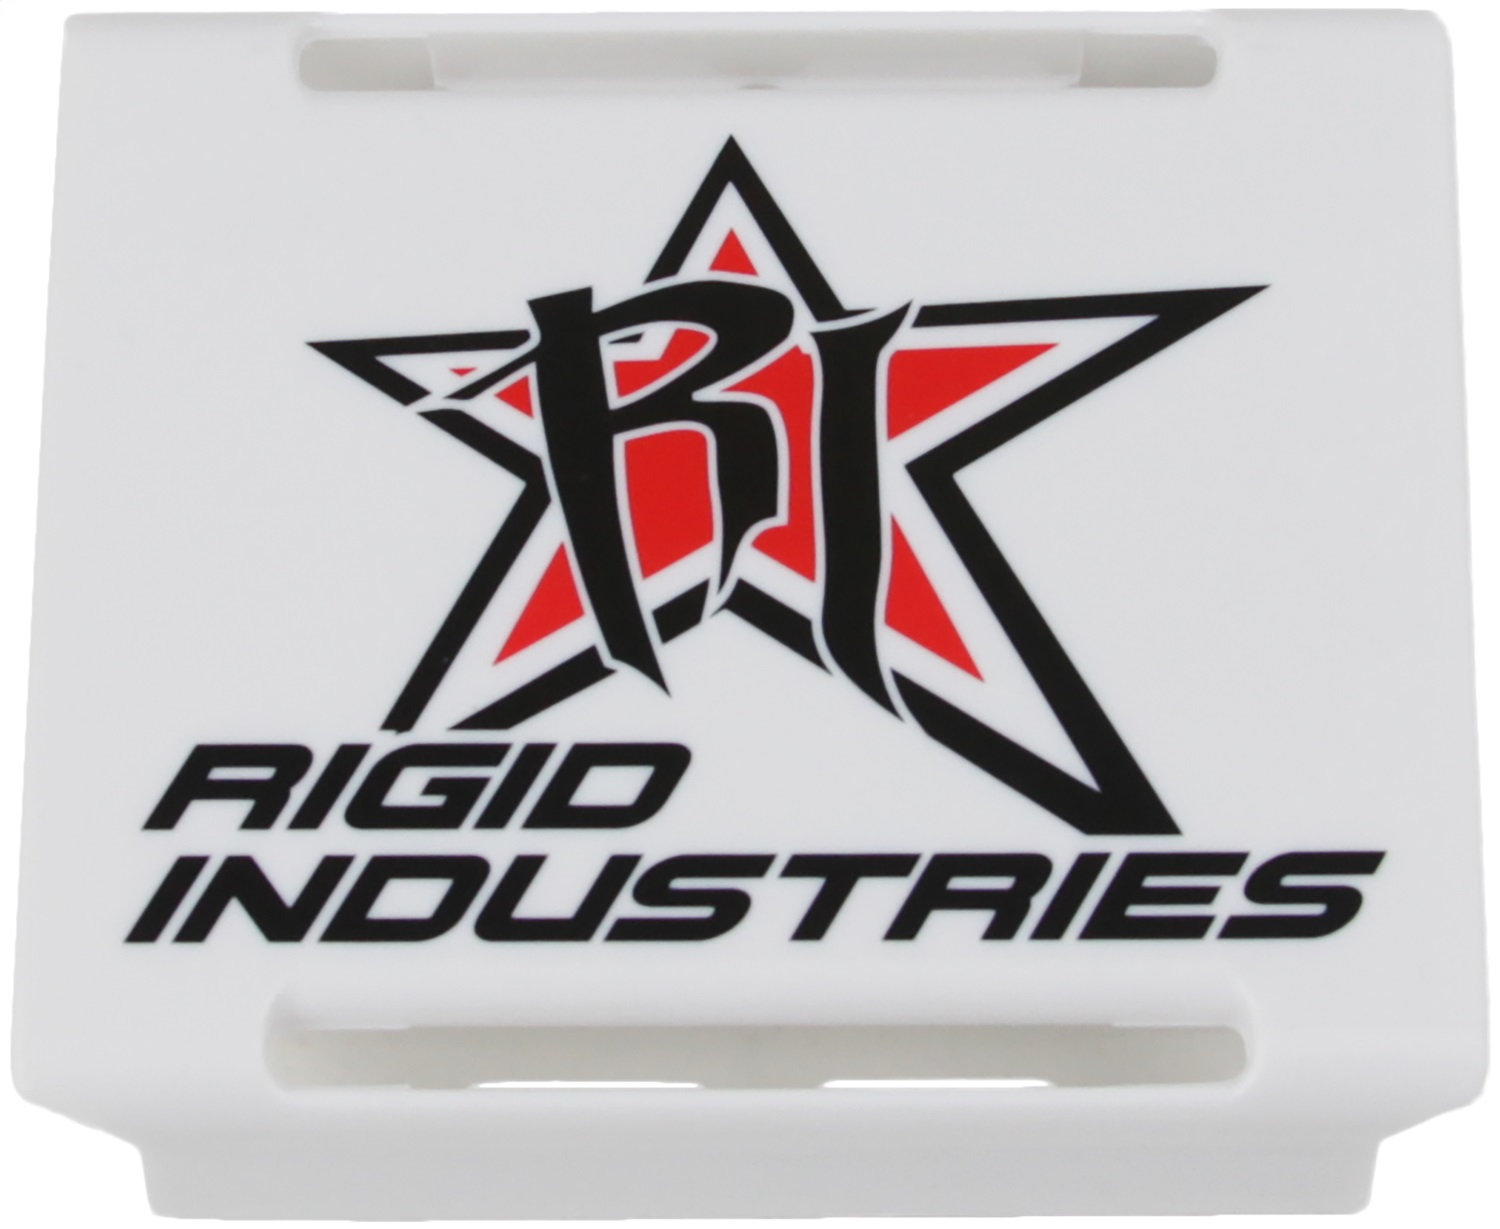 Rigid Industries 10496 EM Series Light Cover